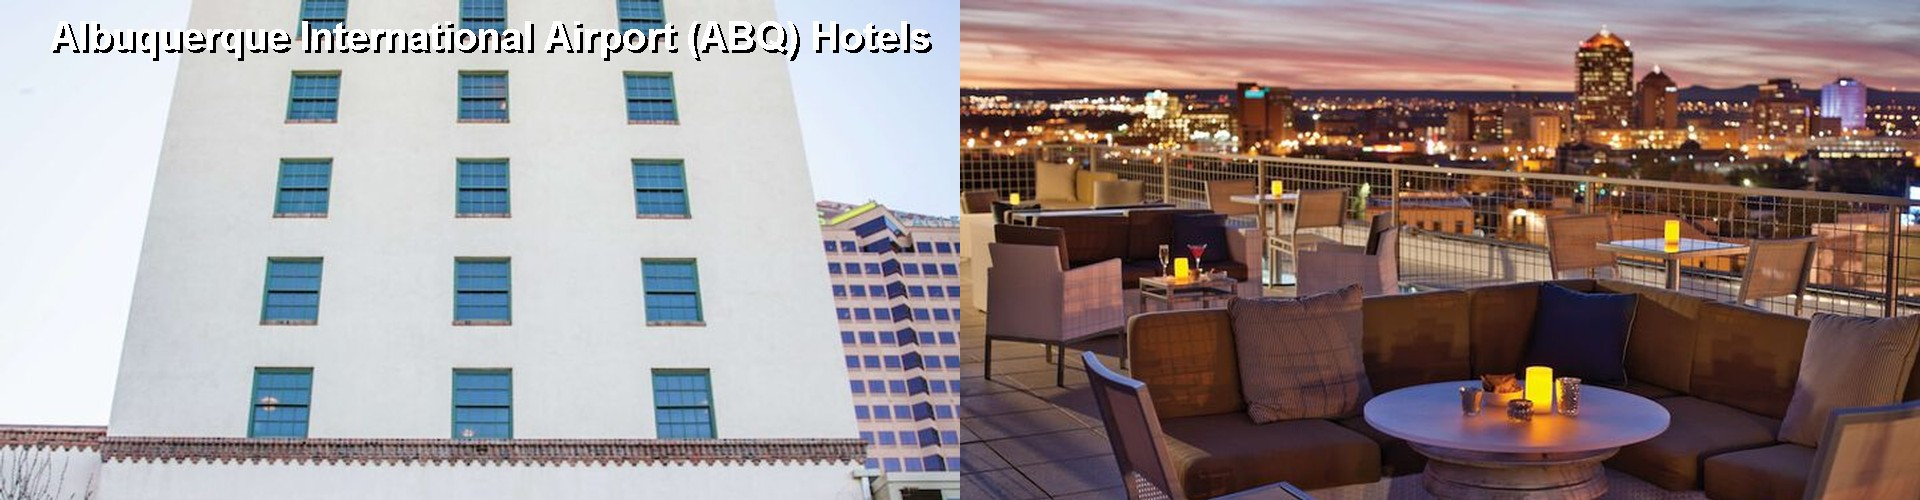 5 Best Hotels near Albuquerque International Airport (ABQ)